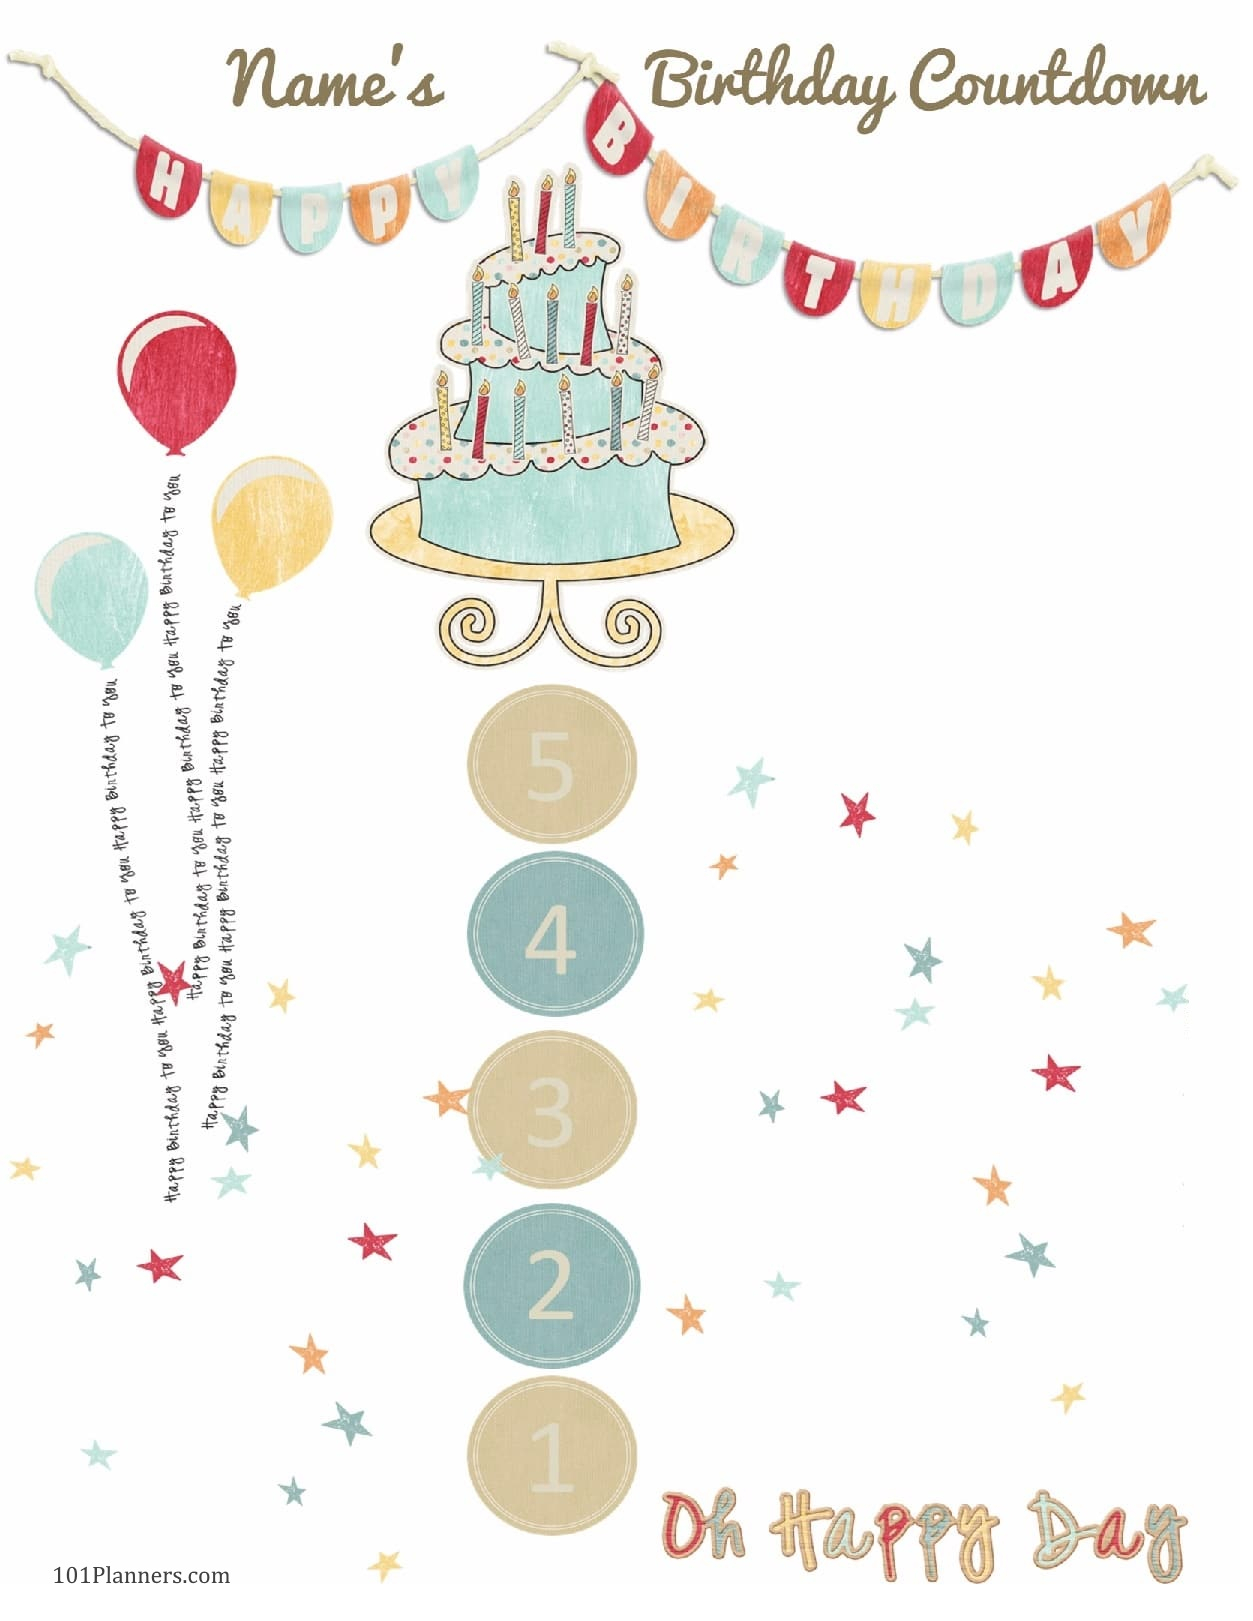 6 Colorful Birthday Countdown Calendars Kittybabylove